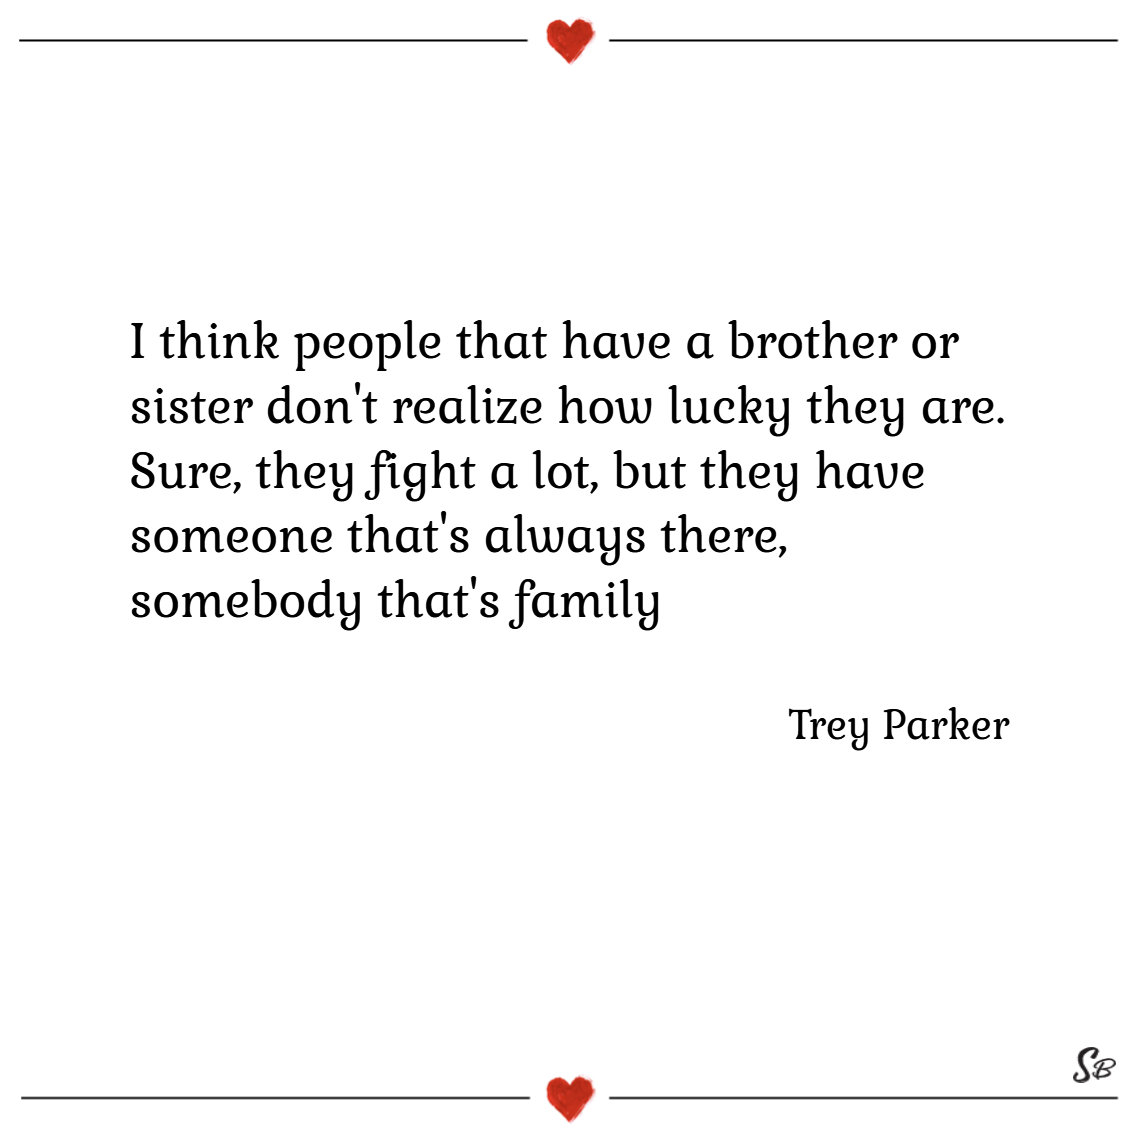 I think people that have a brother or sister don't realize how lucky they